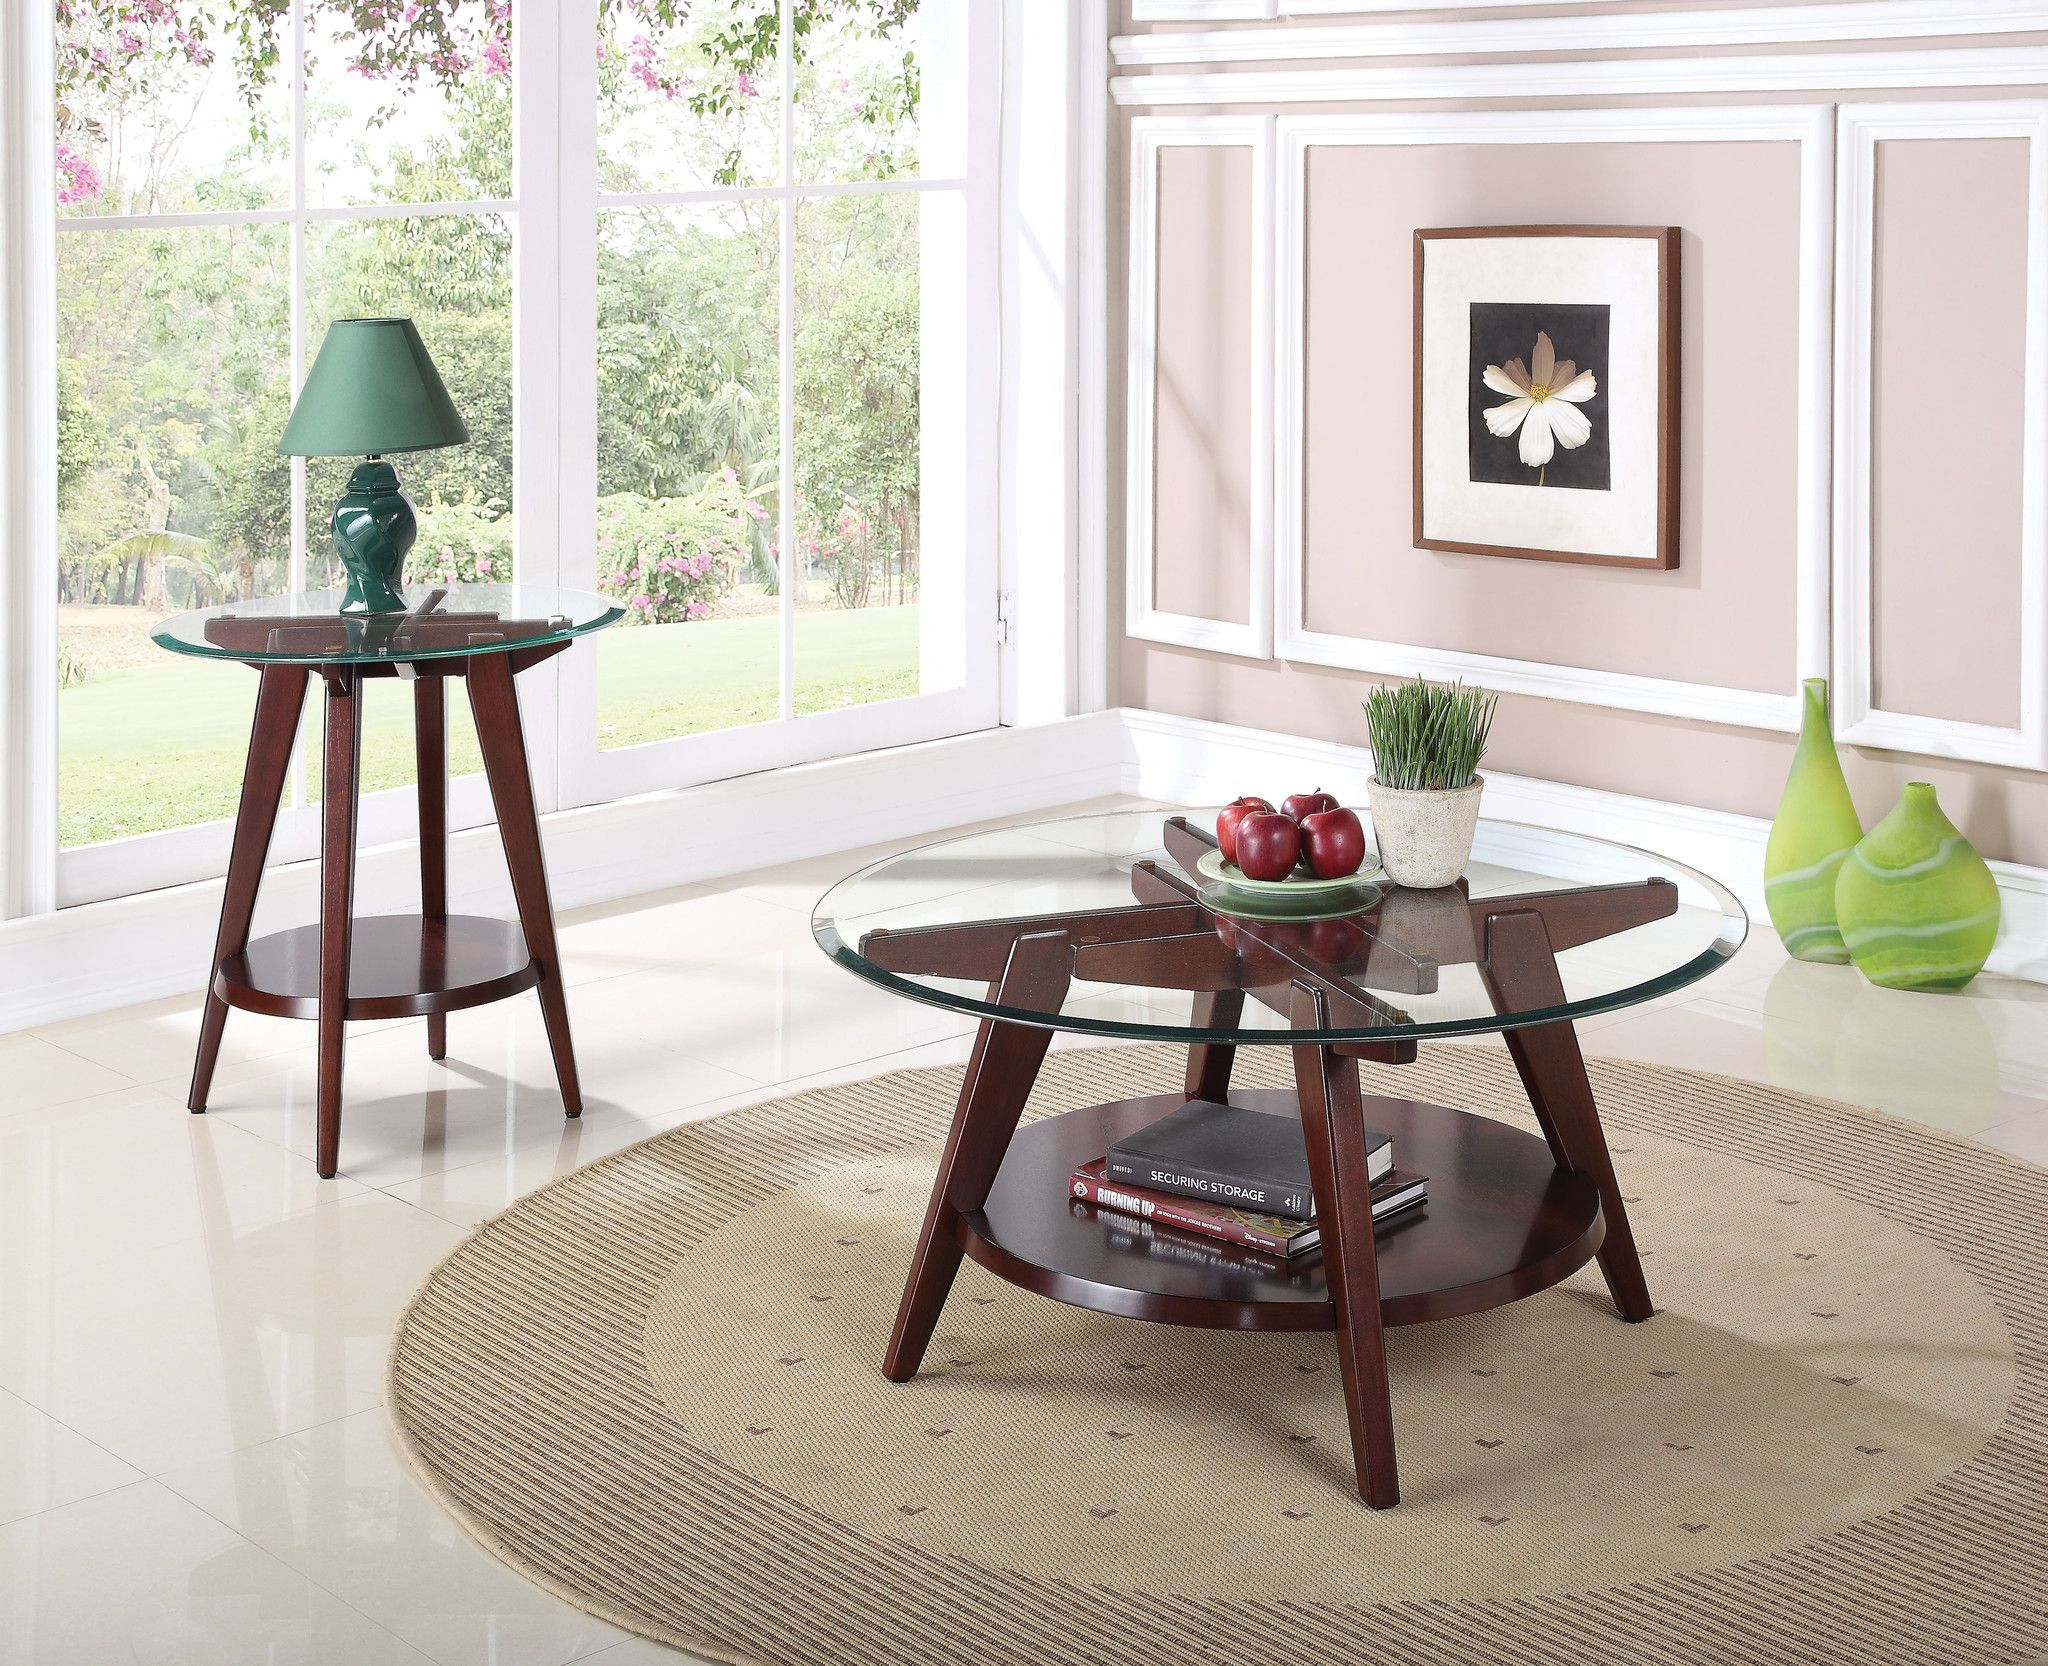 ardis end table 80522 100 features espresso finish clear glass